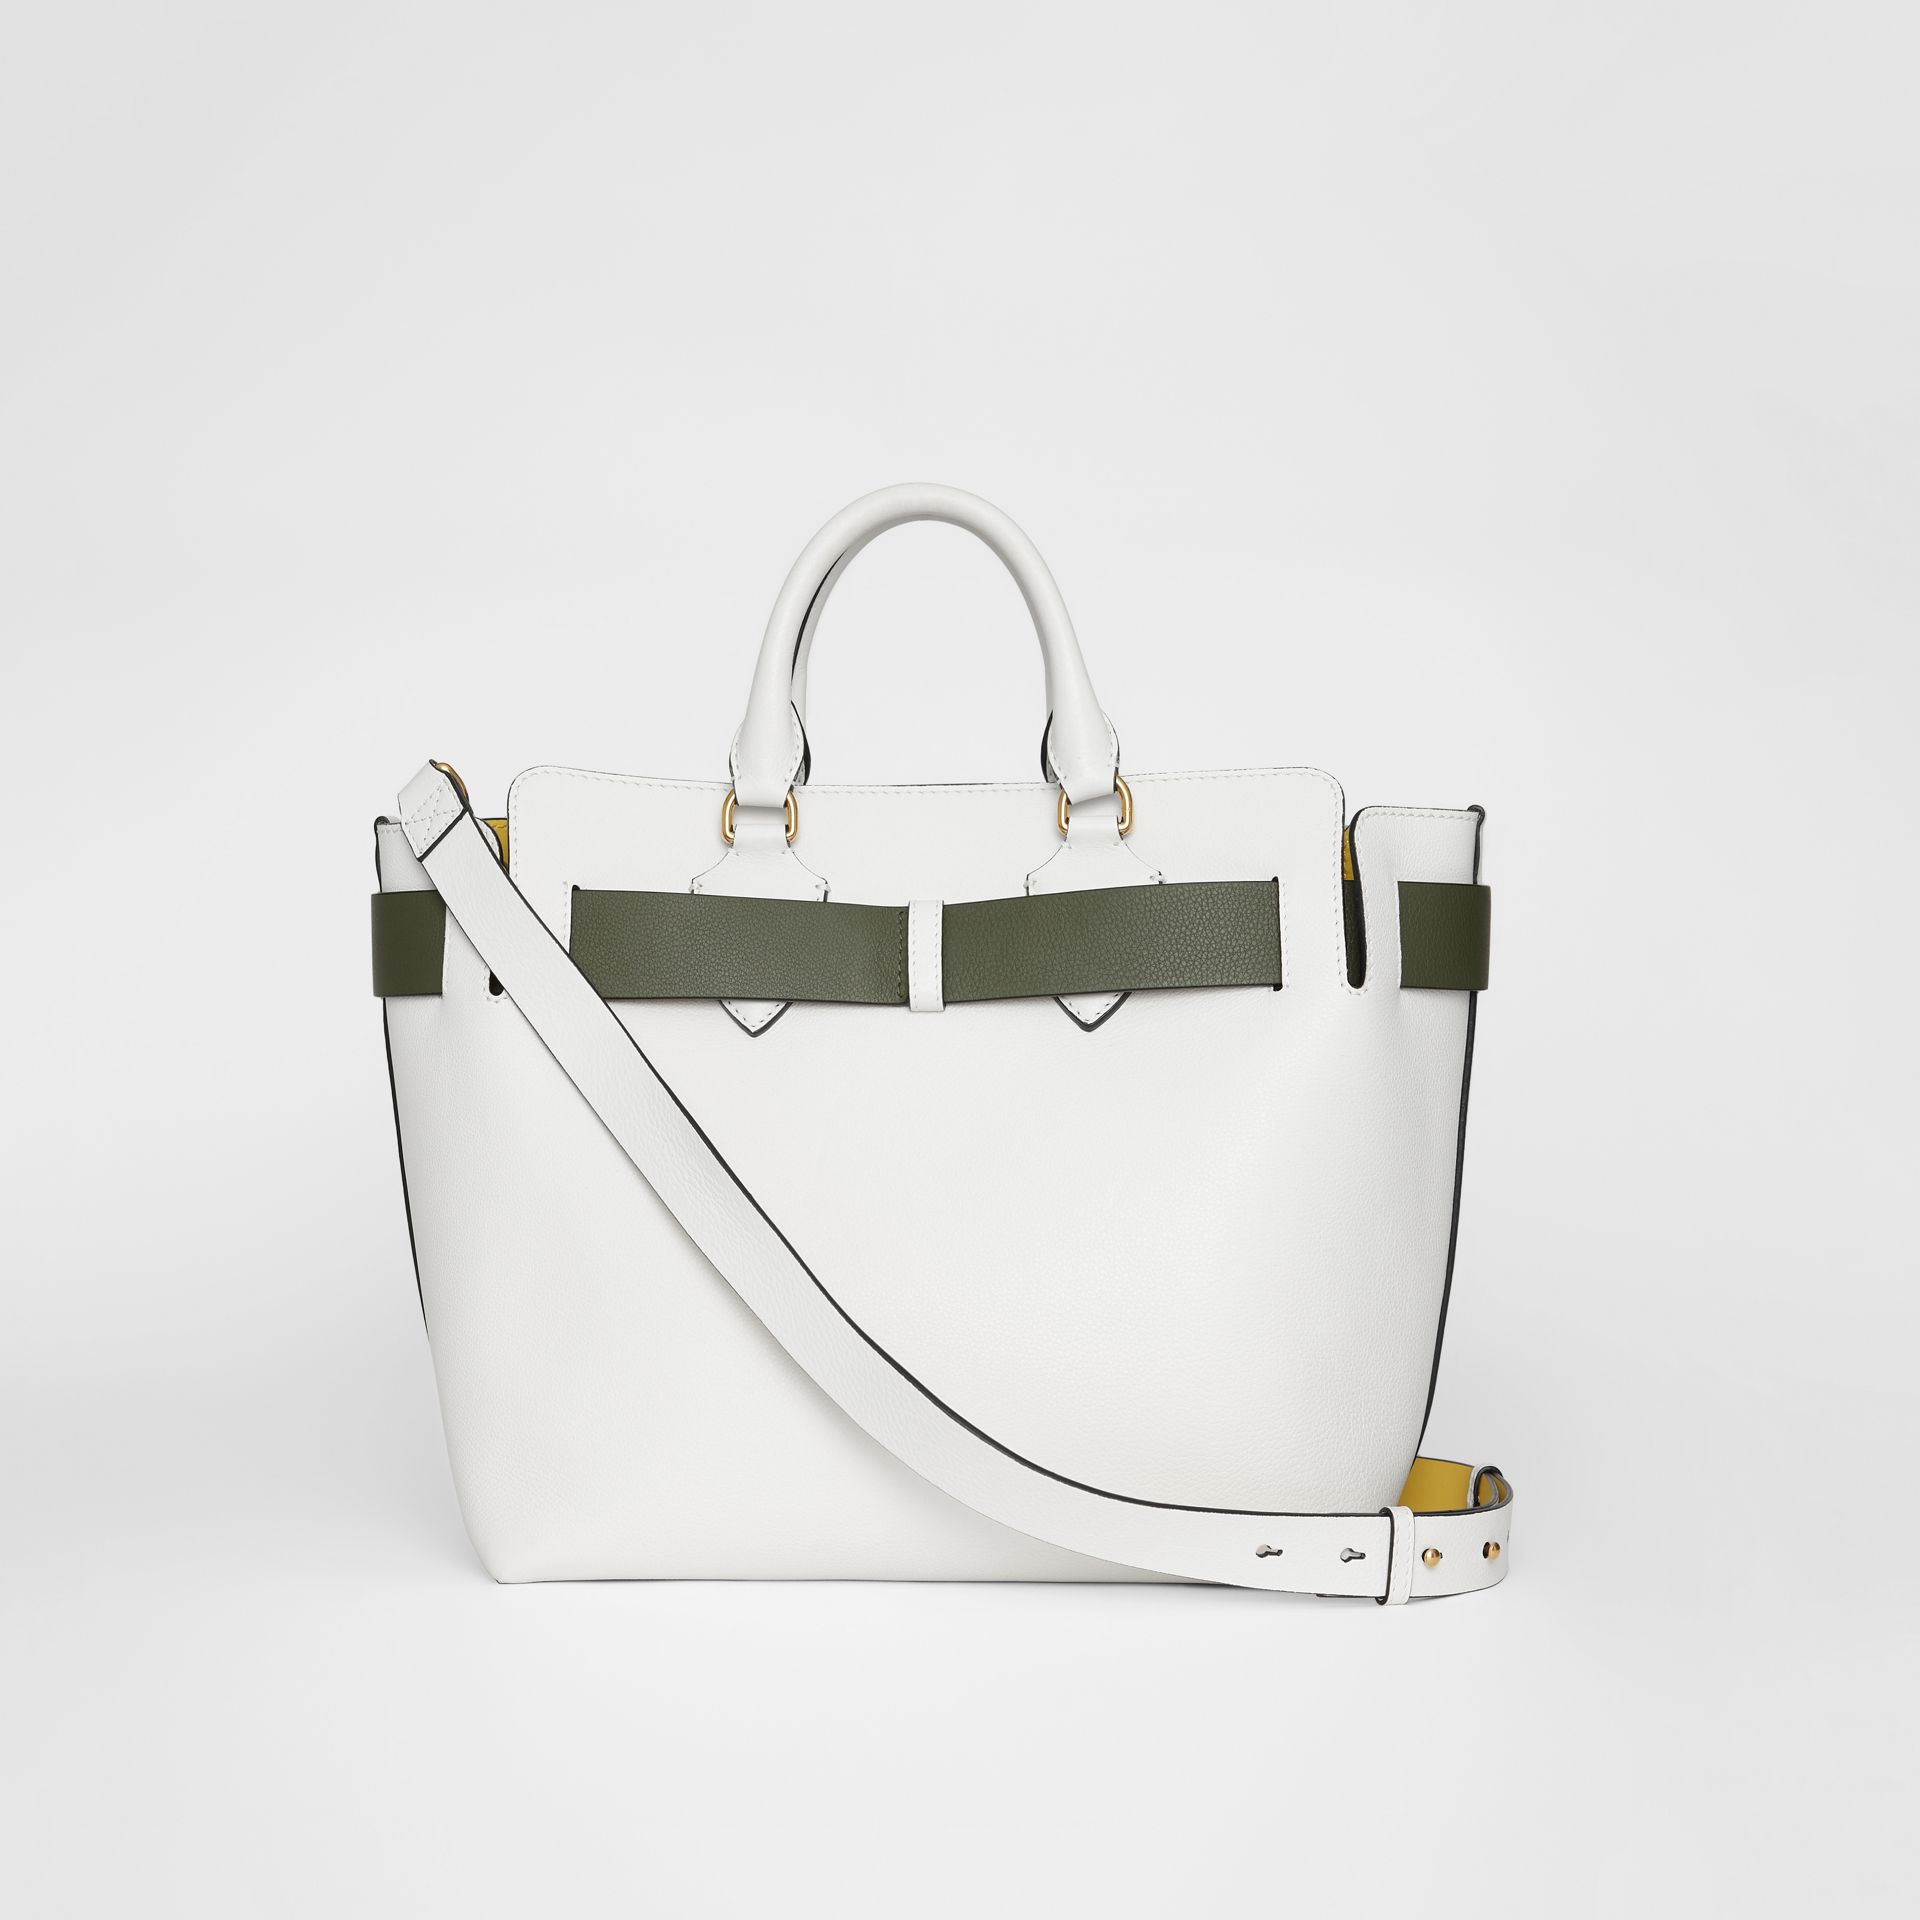 Sac The Belt moyen en cuir (Blanc Craie) - Femme | Burberry - photo de la galerie 7